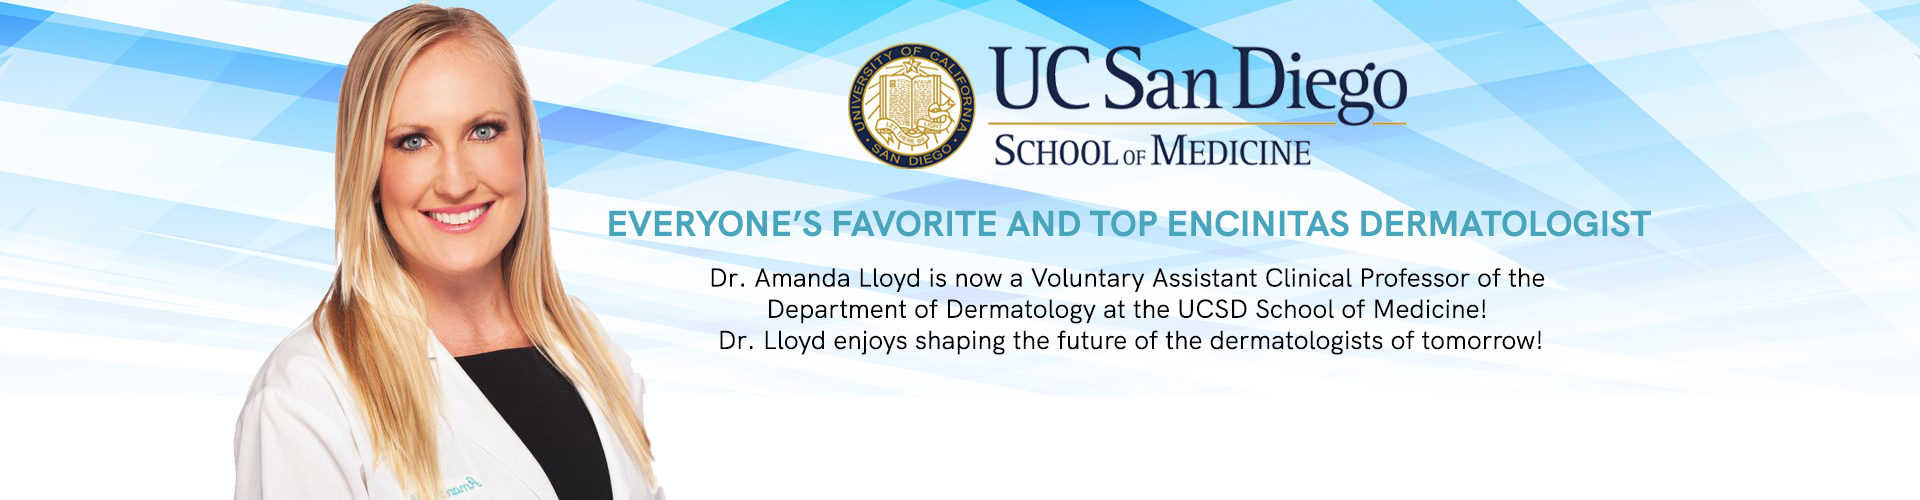 Dr. Amanda Lloyd - Voluntary Assistant Clinical Professor of the Department of Dermatology at the UCSD